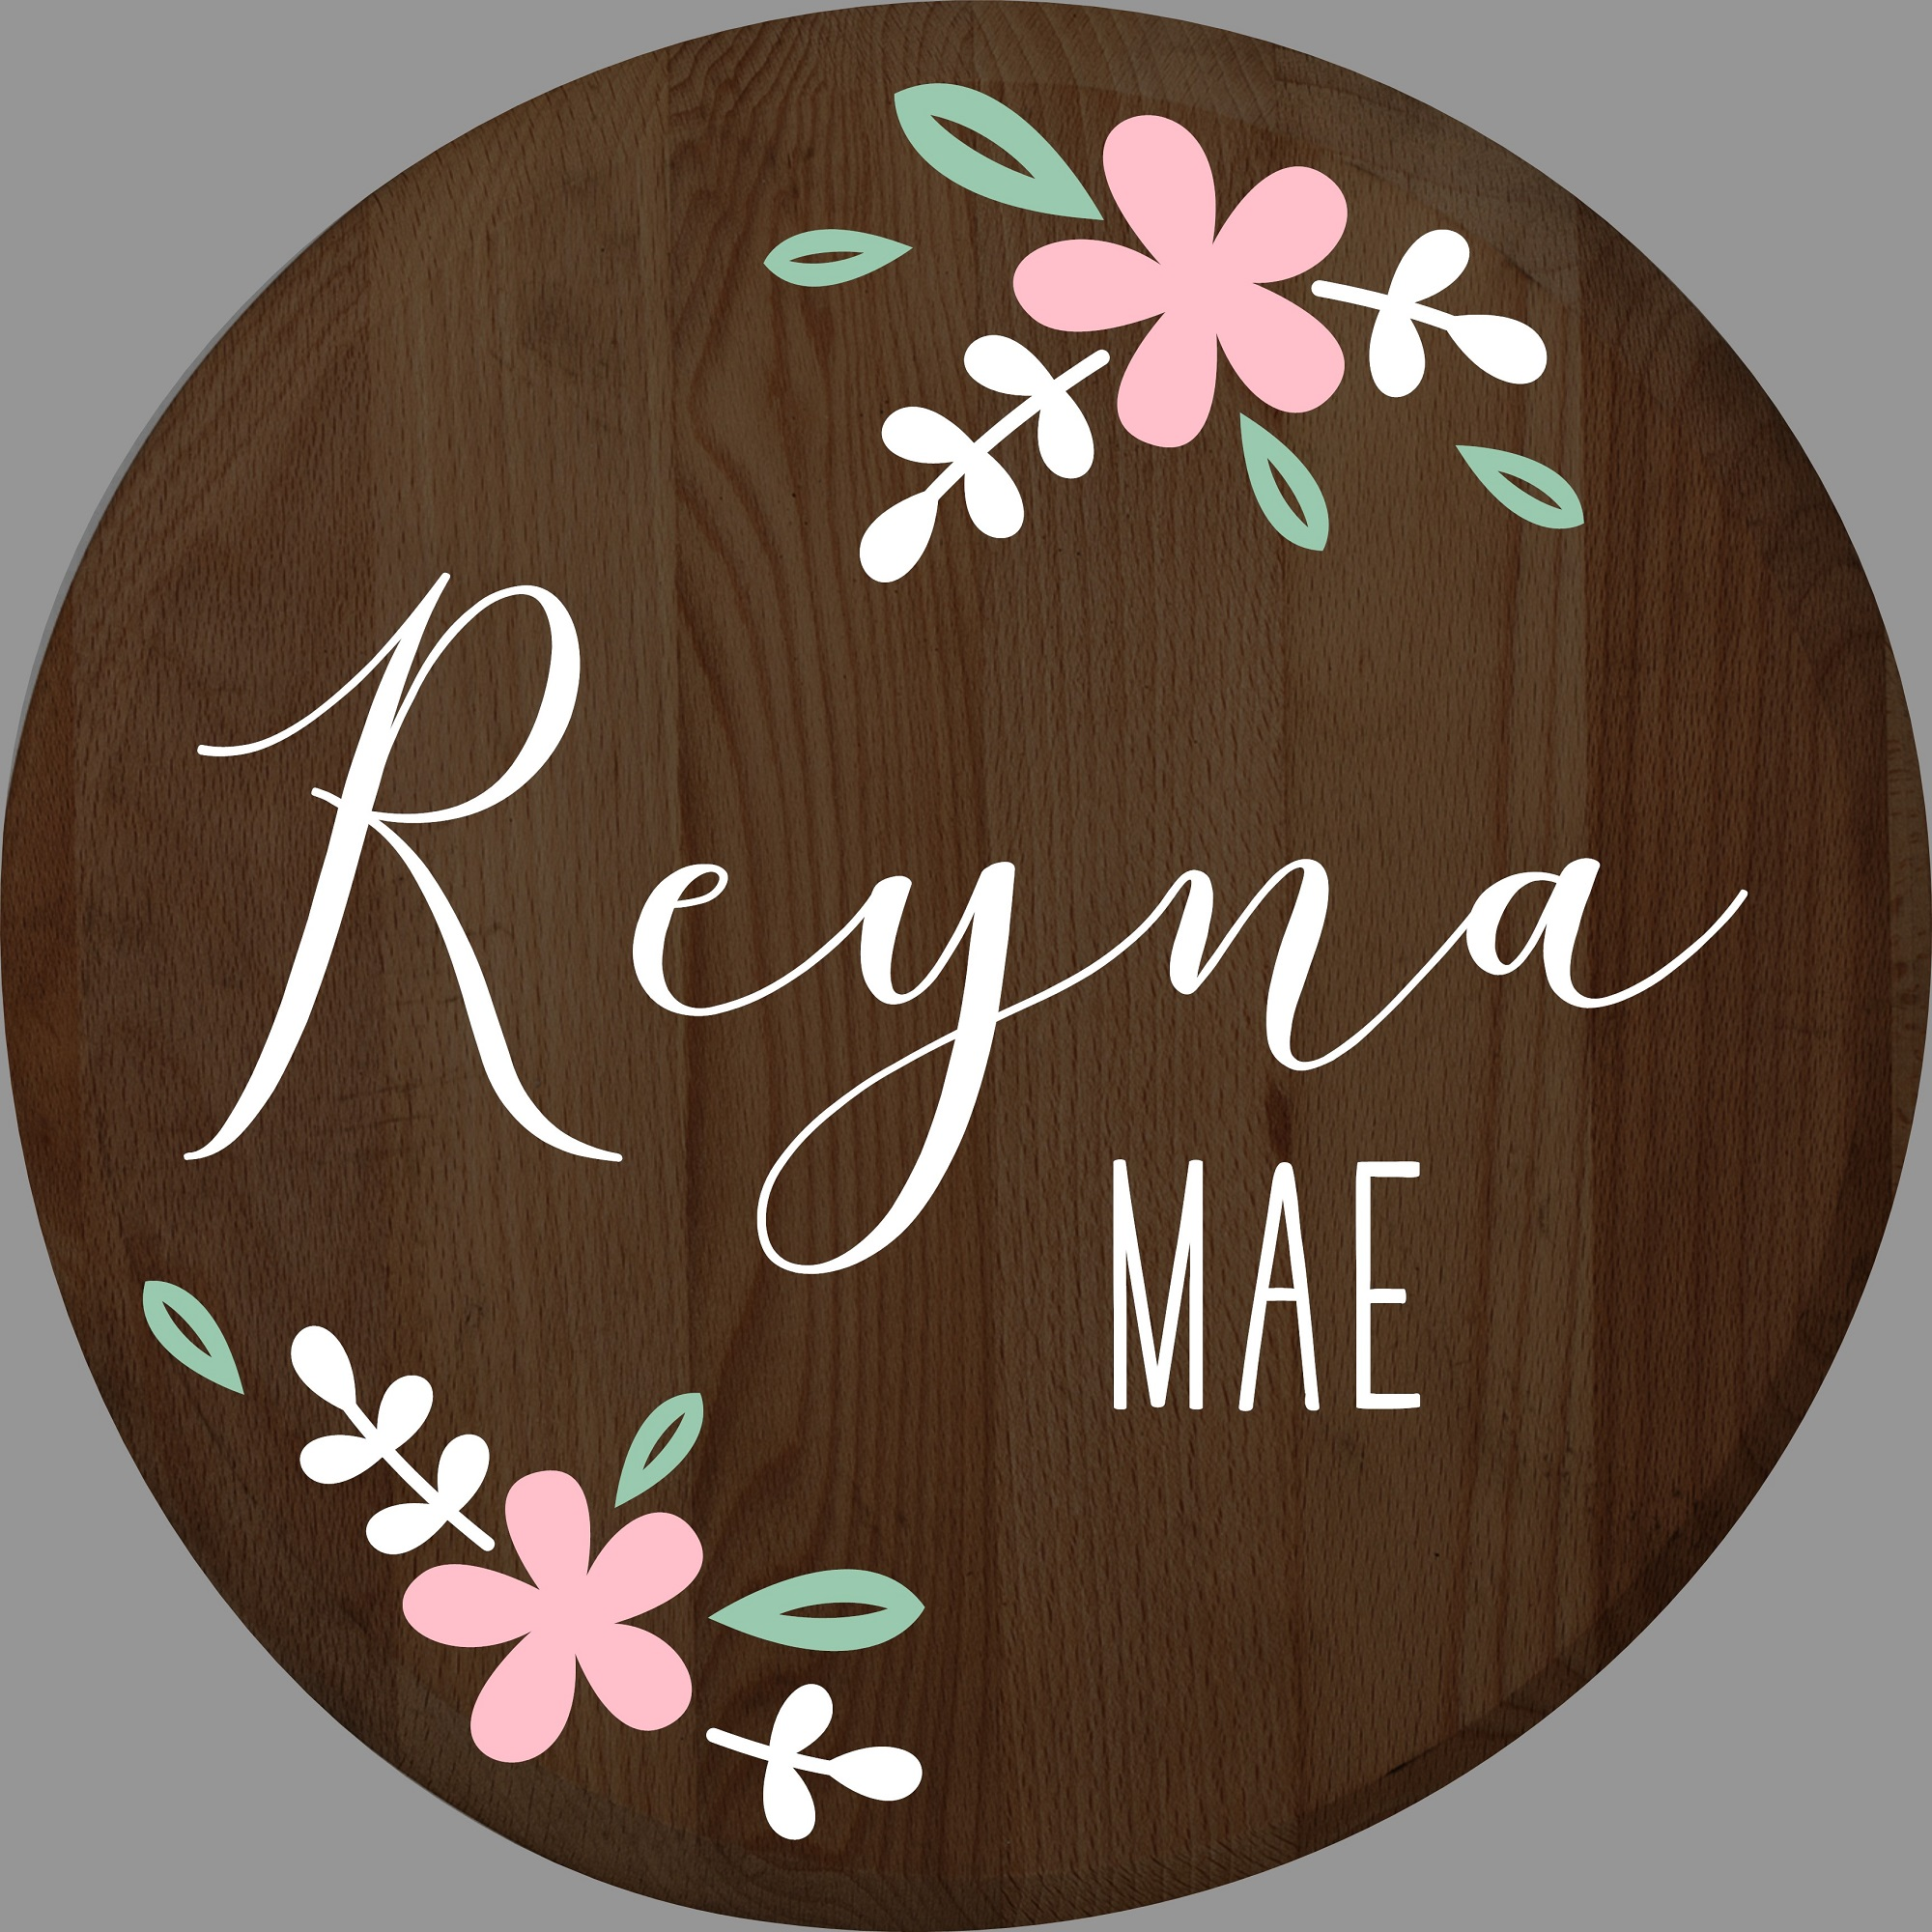 """Customizable Baby Girl Floral Round Sign"" DIY Wood Sign Kit (17in Round)"